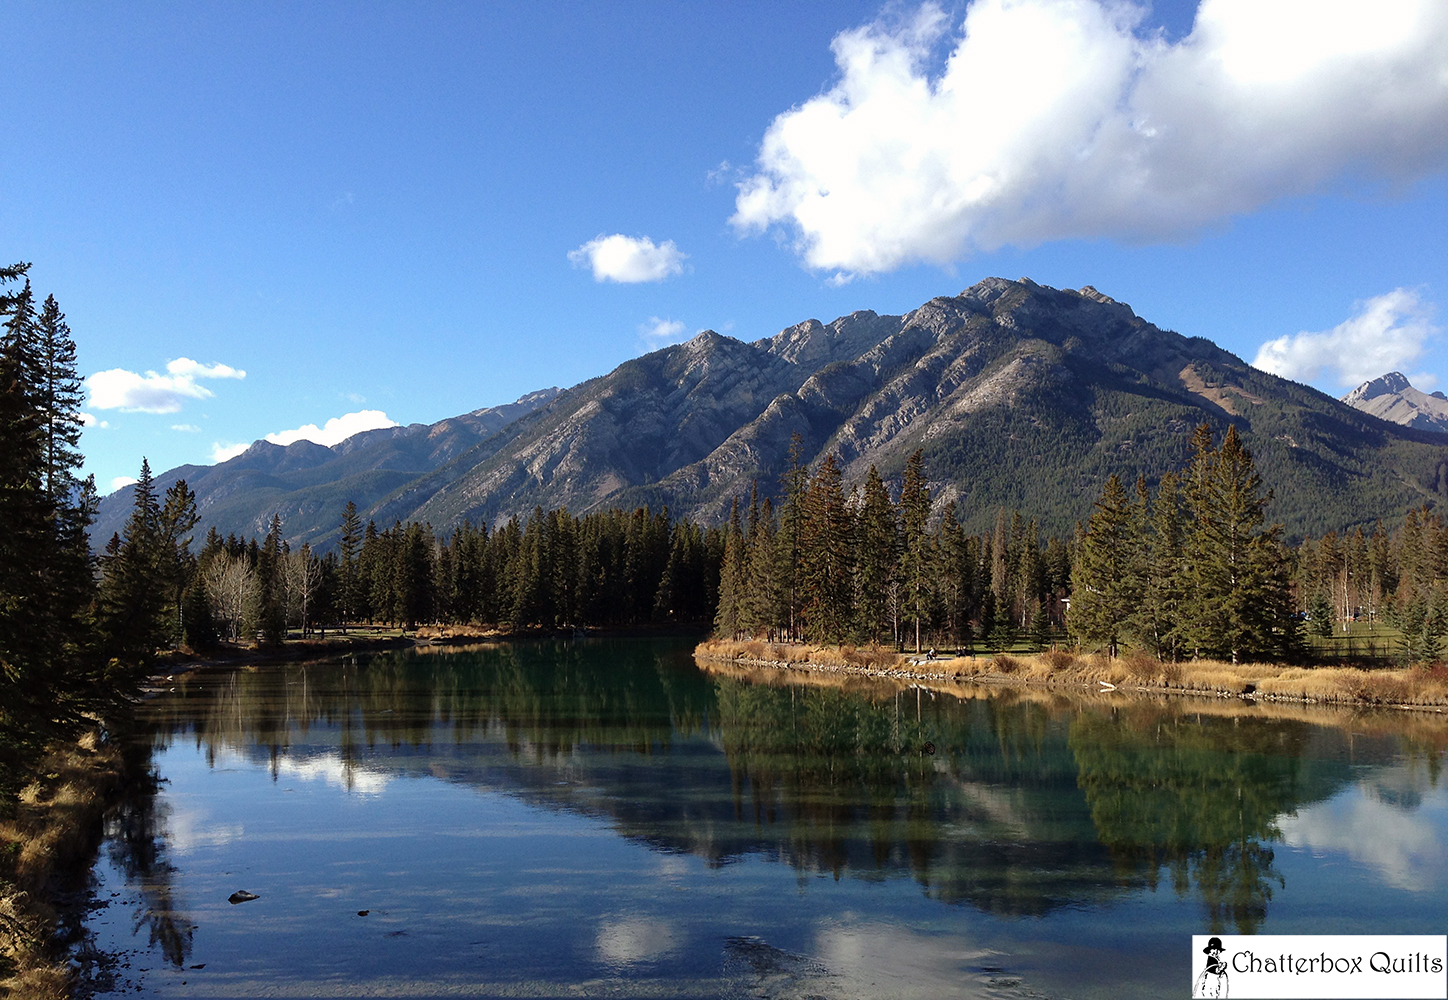 The Bow River - I love this photo!